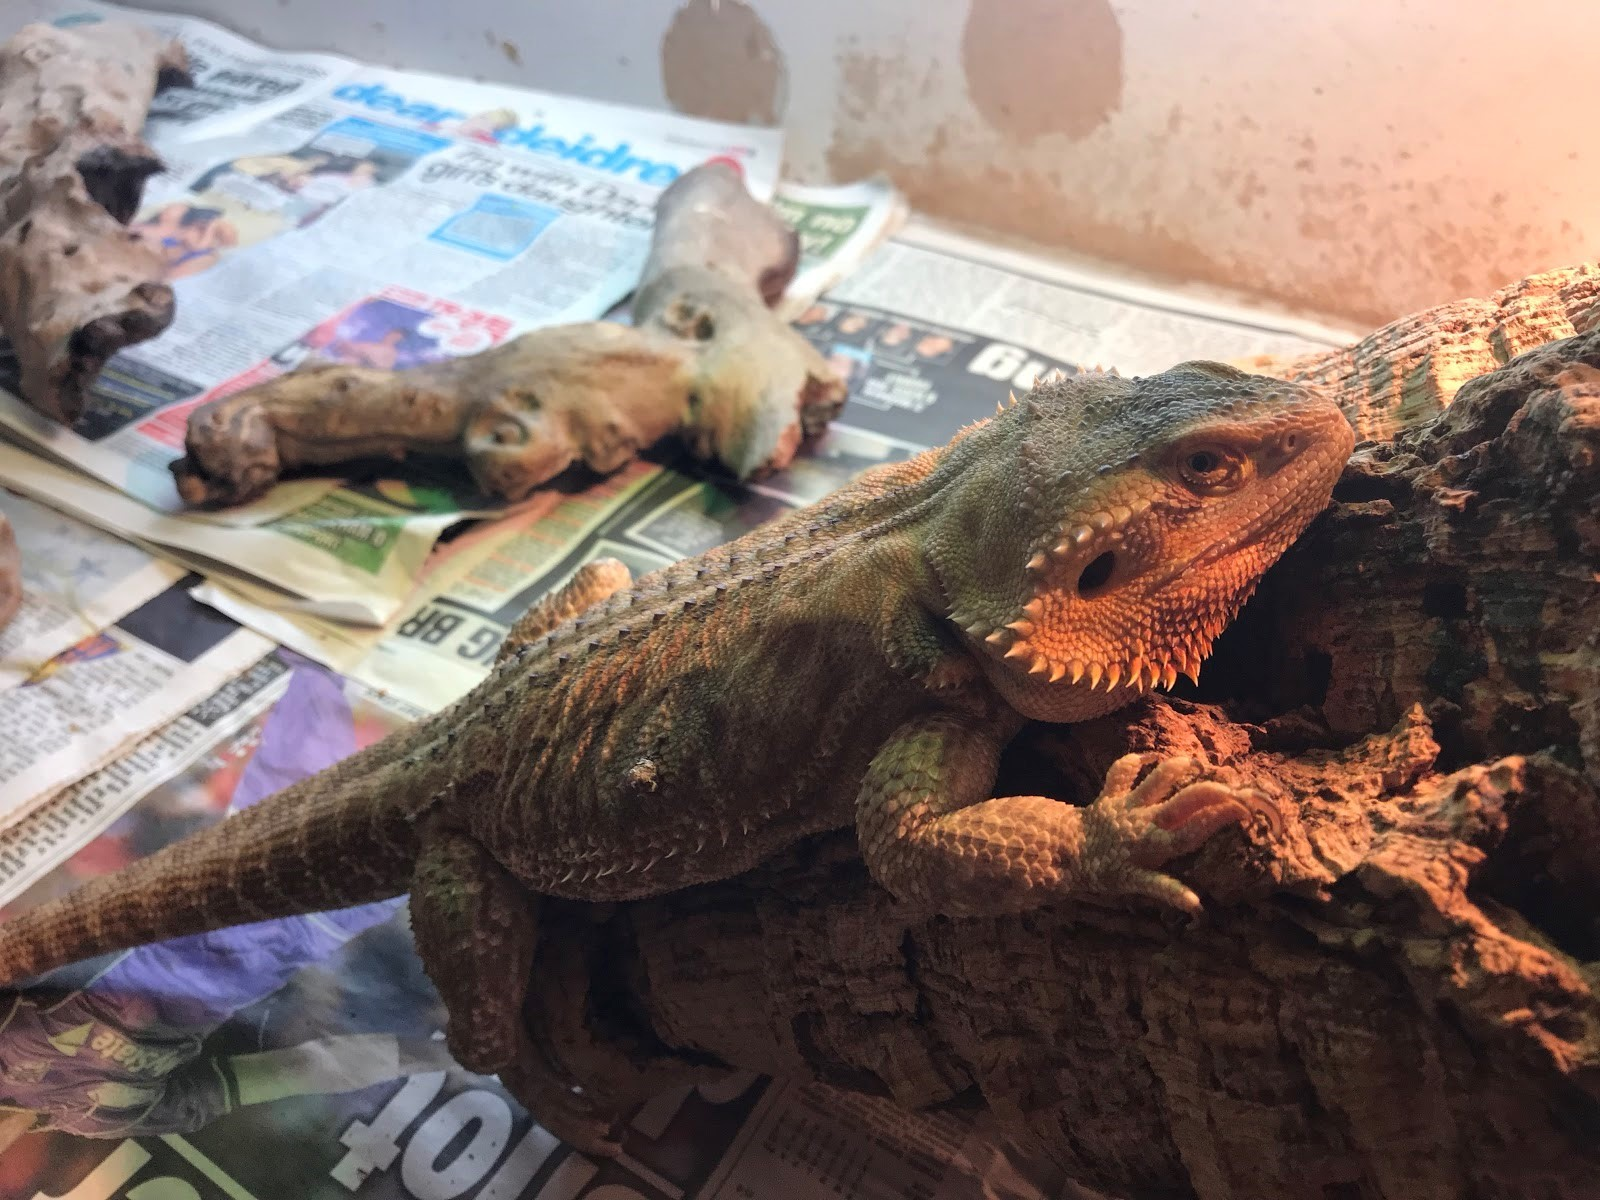 This bearded dragon was found dumped in a shoebox